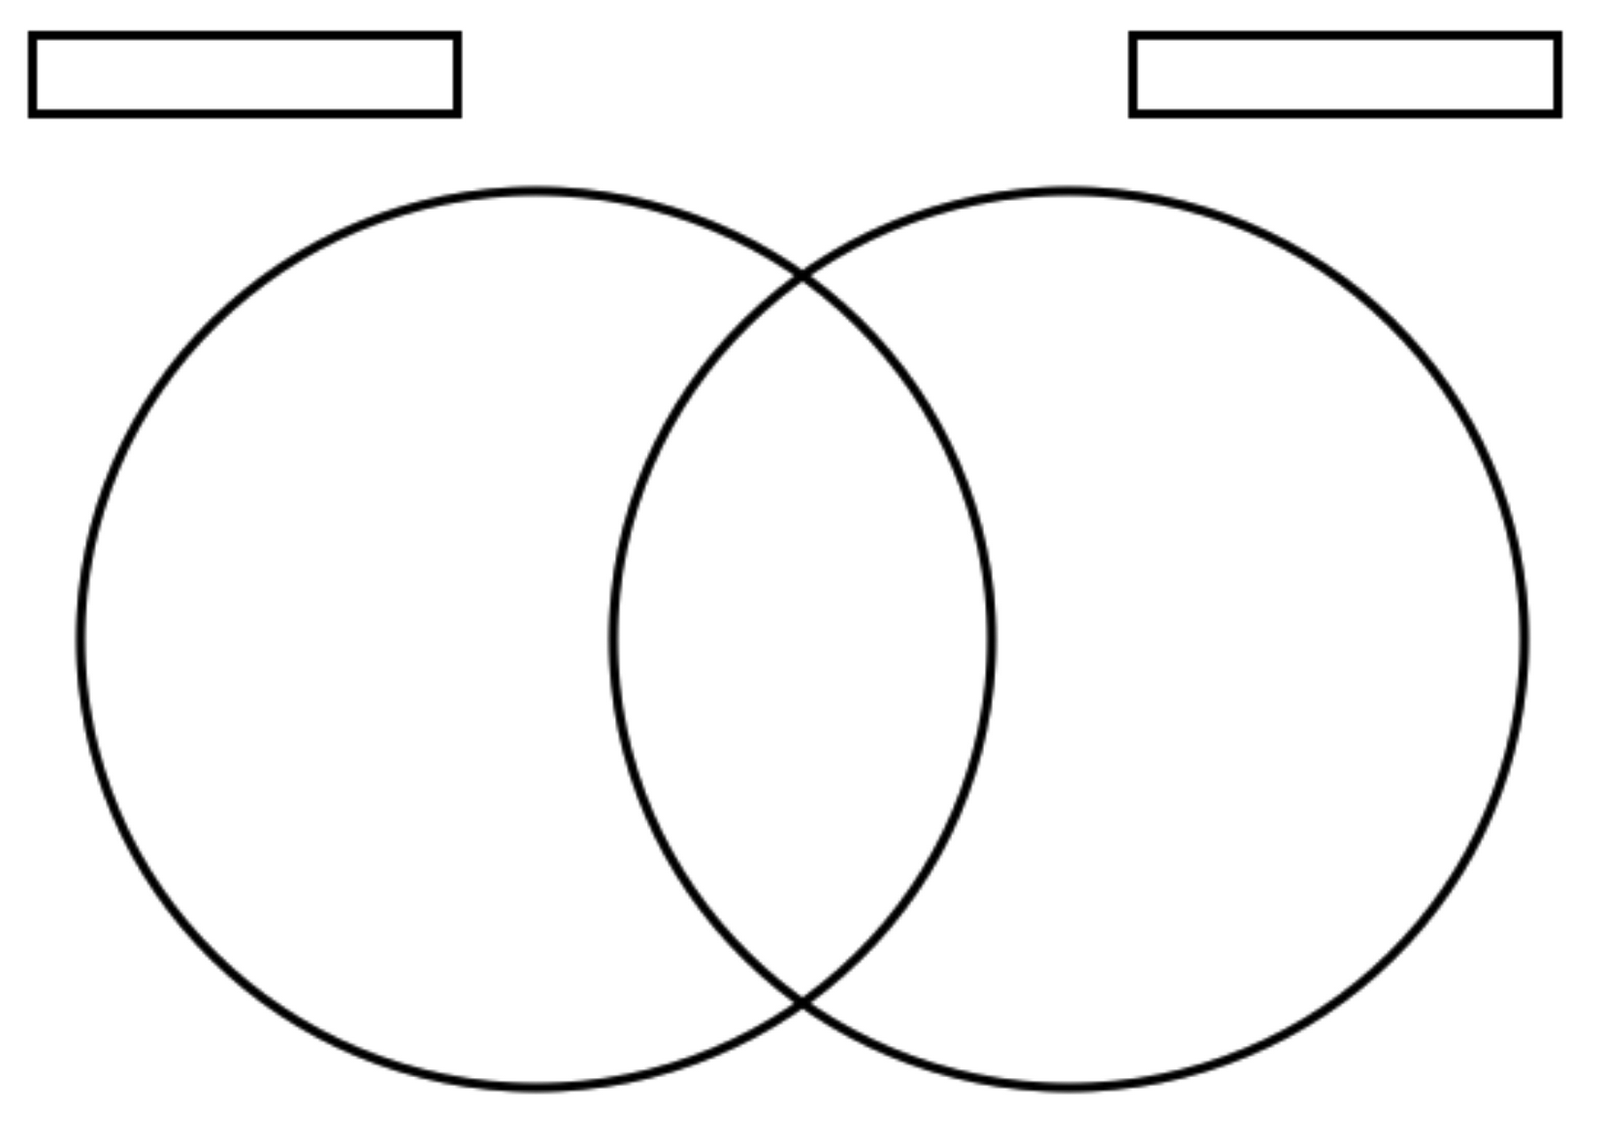 This Is A Venn Diagram To Go With The Story The Lion And